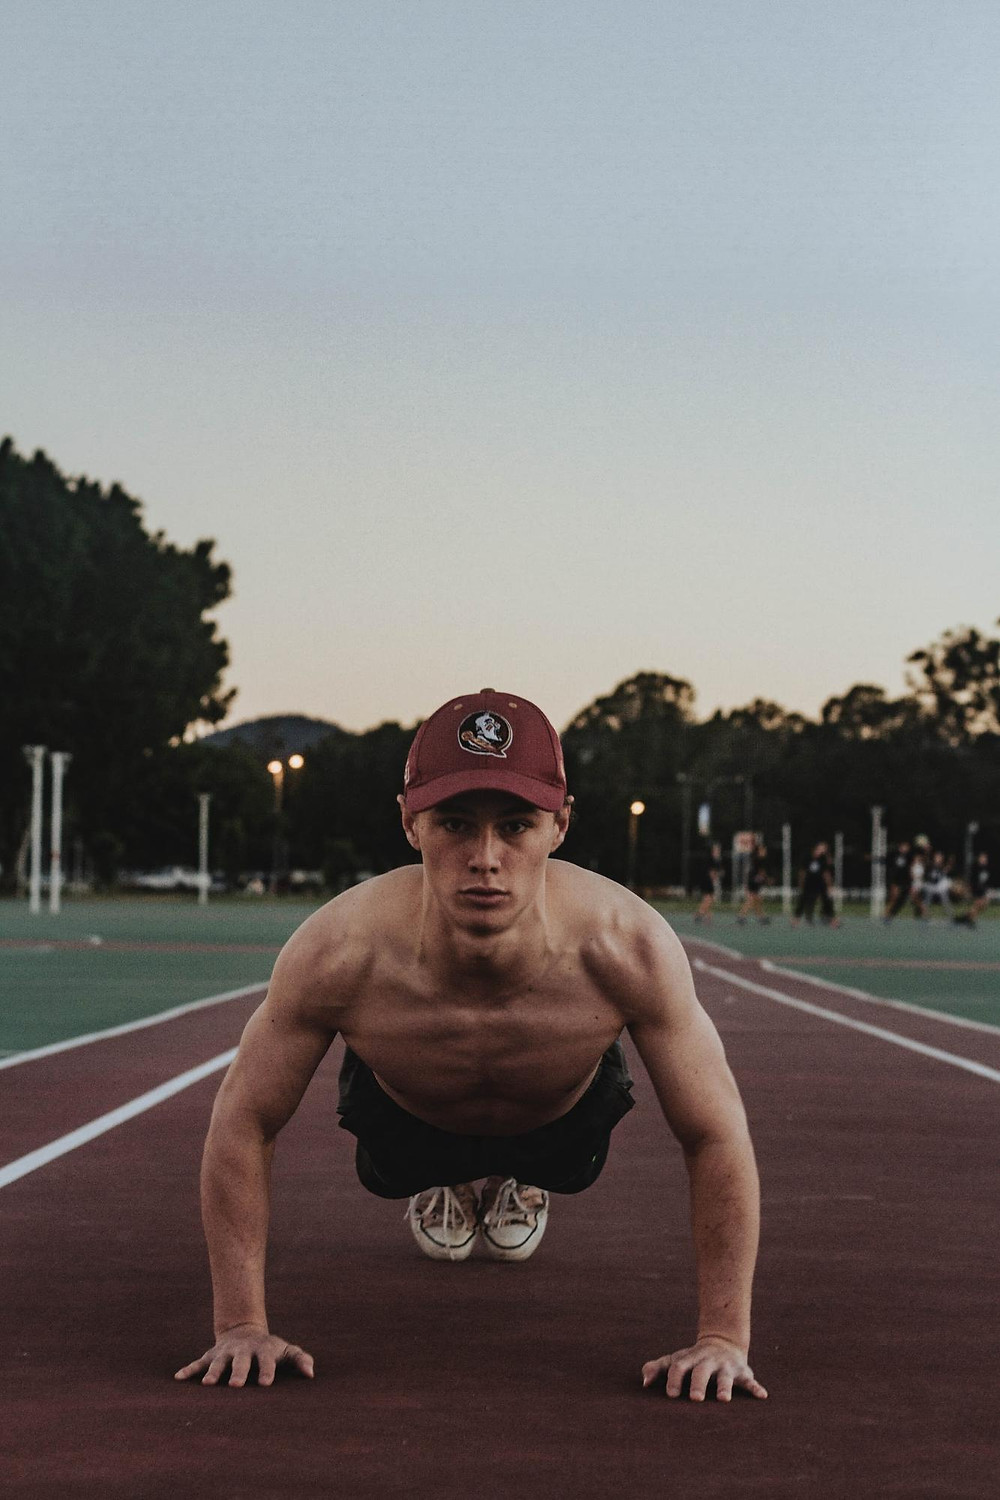 Front view of man doing a pushup